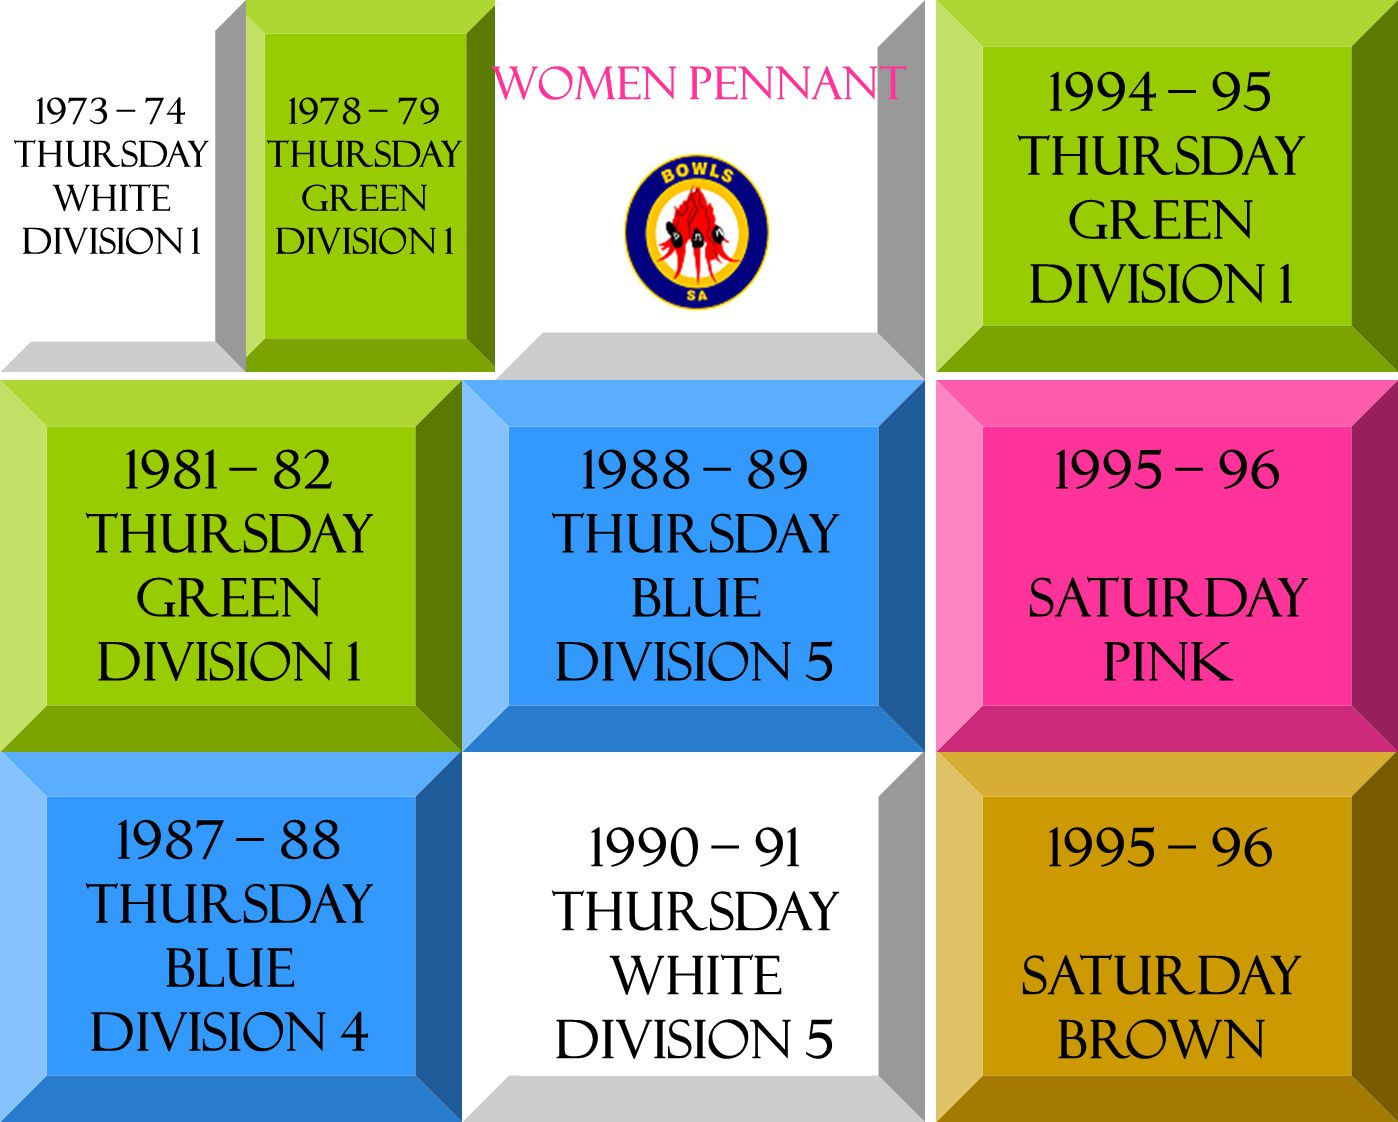 1978 – 79 Thursday green DIVISION 1 1981 – 82 Thursday green DIVISION 1 1987 – 88 Thursday blue DIVISION 4 1988 – 89 Thursday blue DIVISION 5 1990 – 91 Thursday white DIVISION 5 1994 – 95 Thursday green DIVISION 1 1995 – 96 Saturday pink 1995 – 96 Saturday brown Women pennant 1973 – 74 Thursday white DIVISION 1